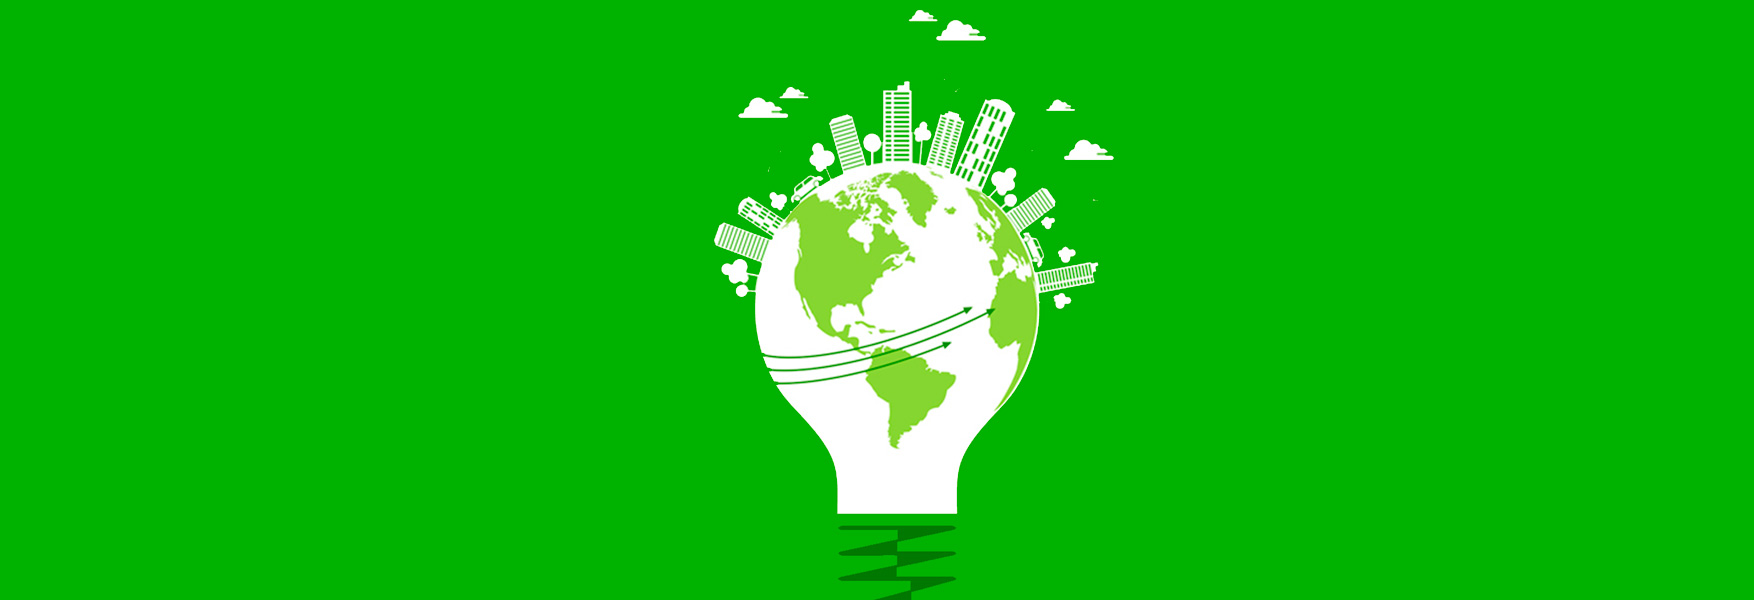 System Shift: Pivoting Toward Sustainability - OpenMind